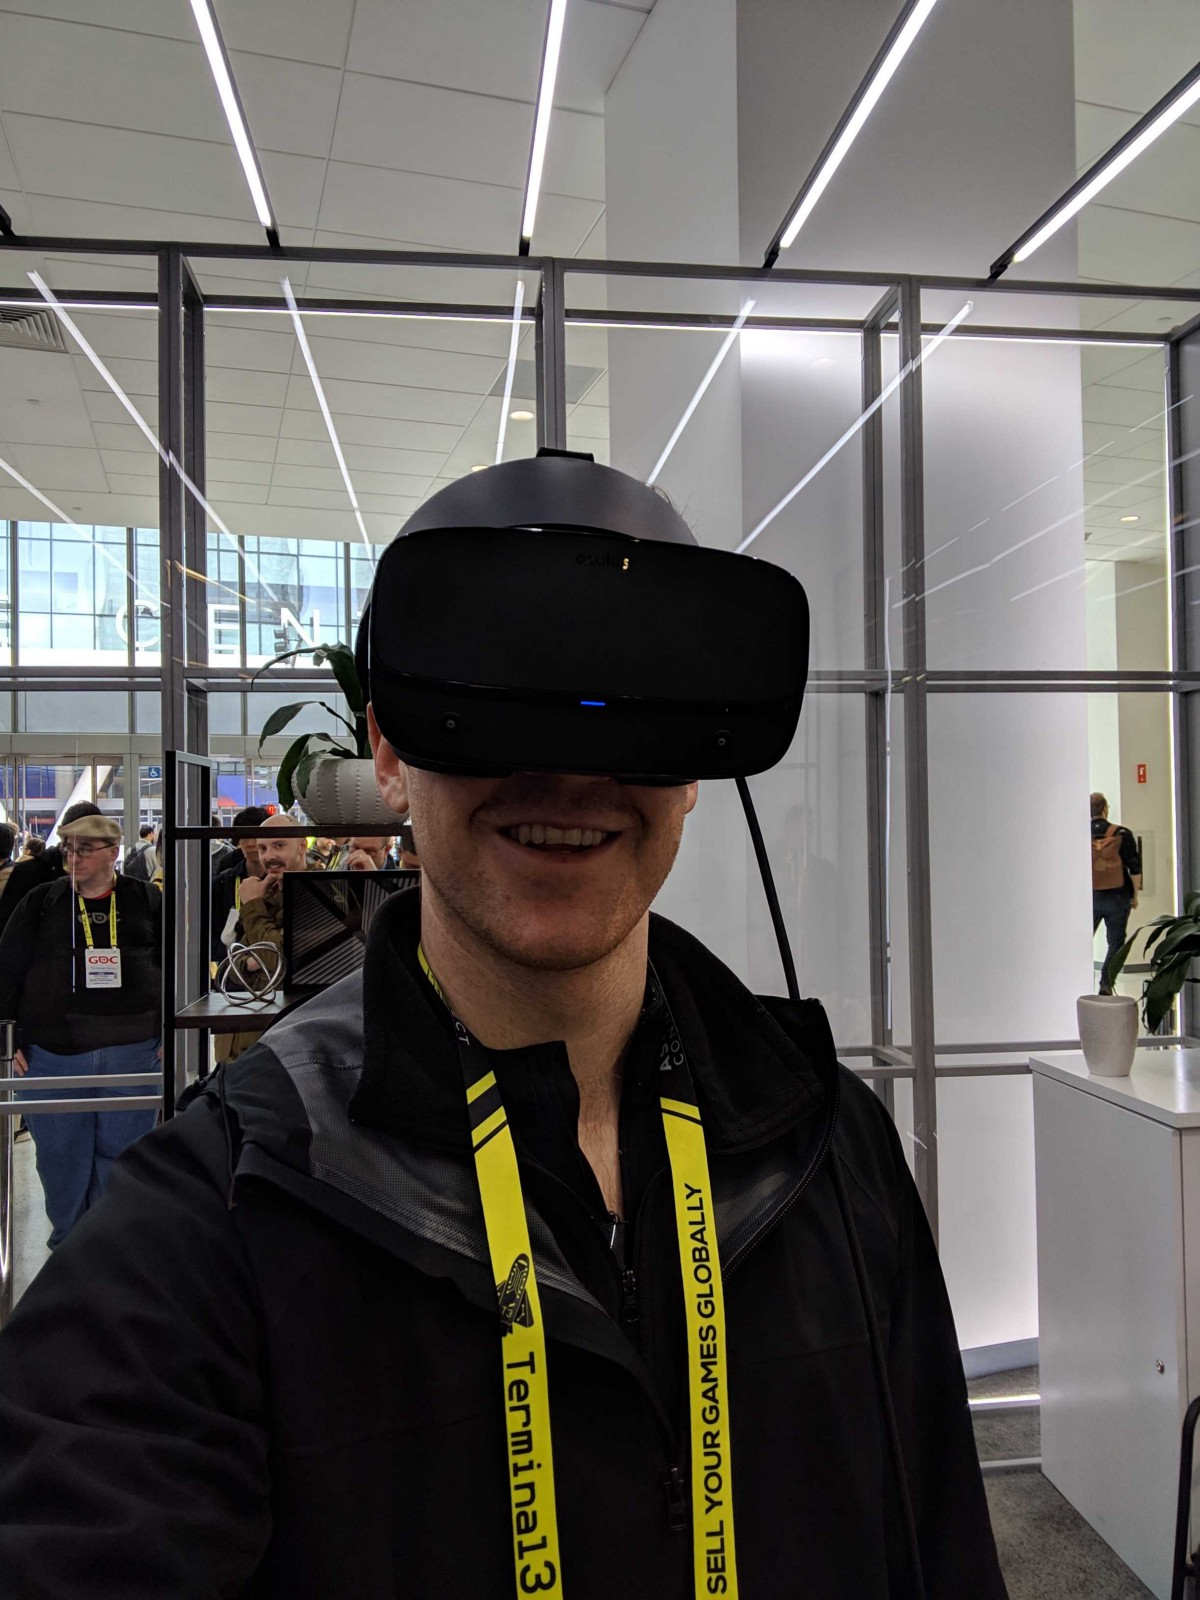 My First Impressions of The Next Generation Virtual Reality Hardware Showcased at GDC 2019